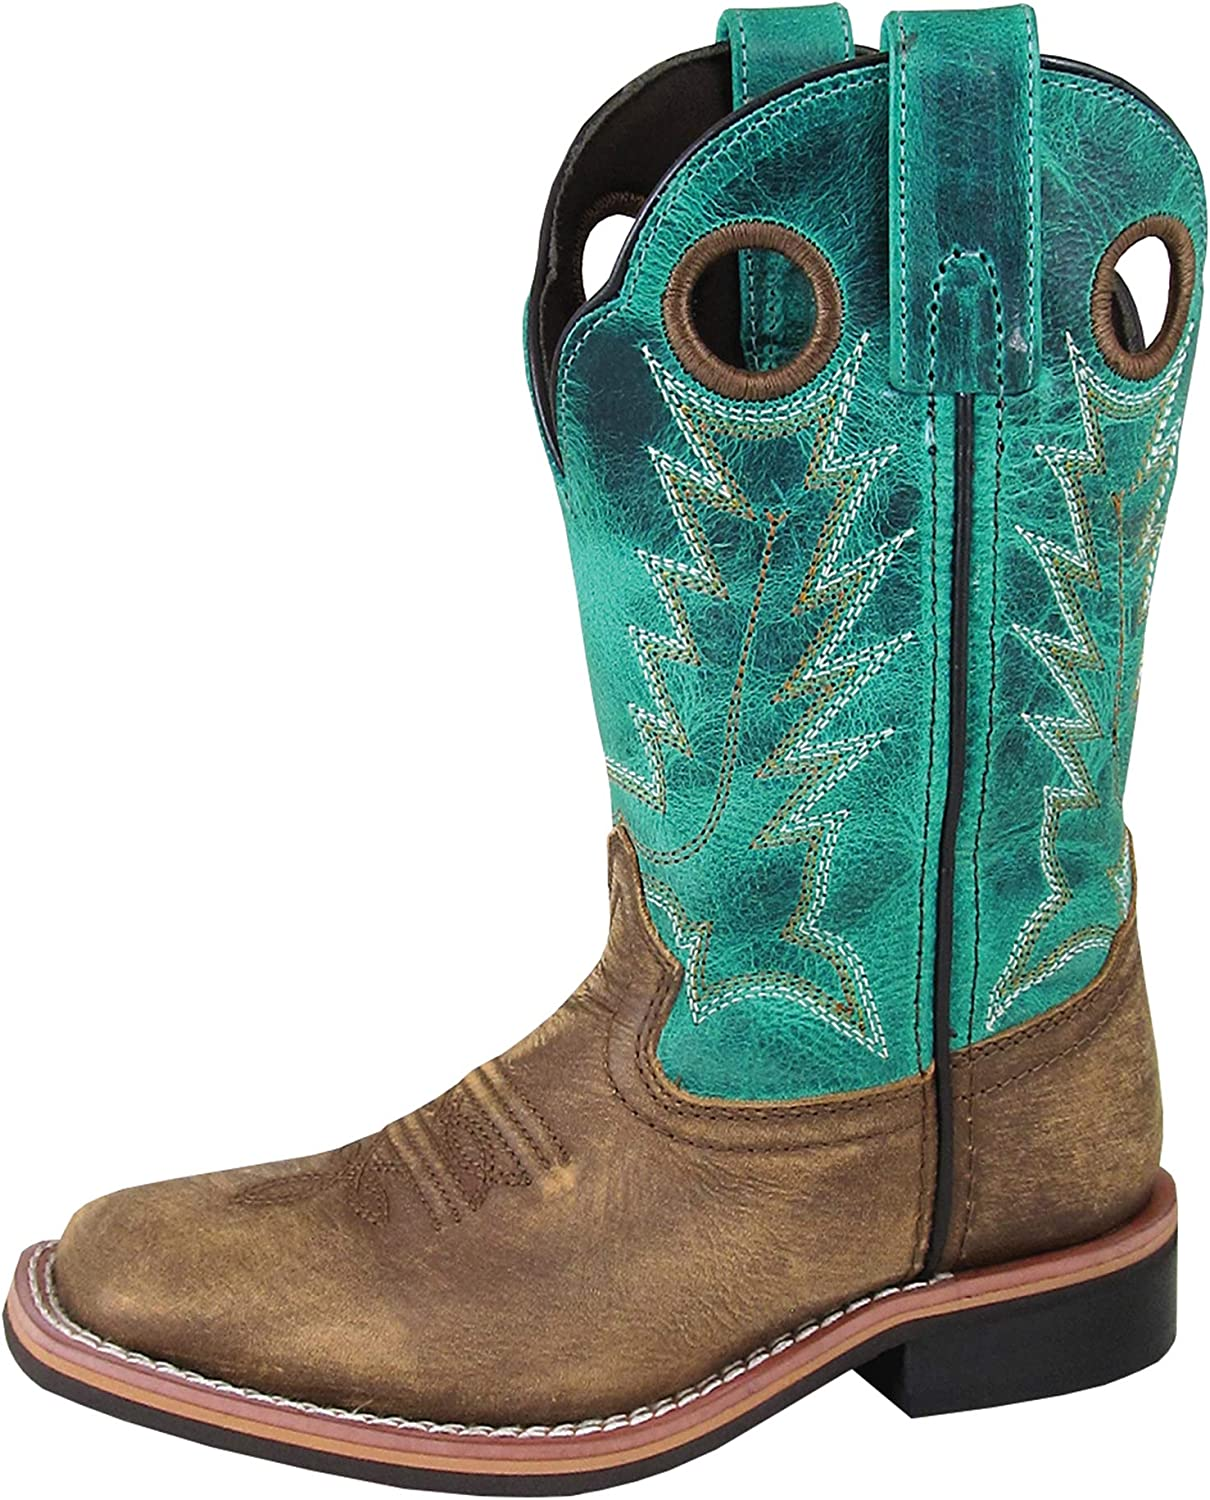 Smoky Children's Jesse Embroidered Leather Western Cowboy Boot - Brown Turquoise